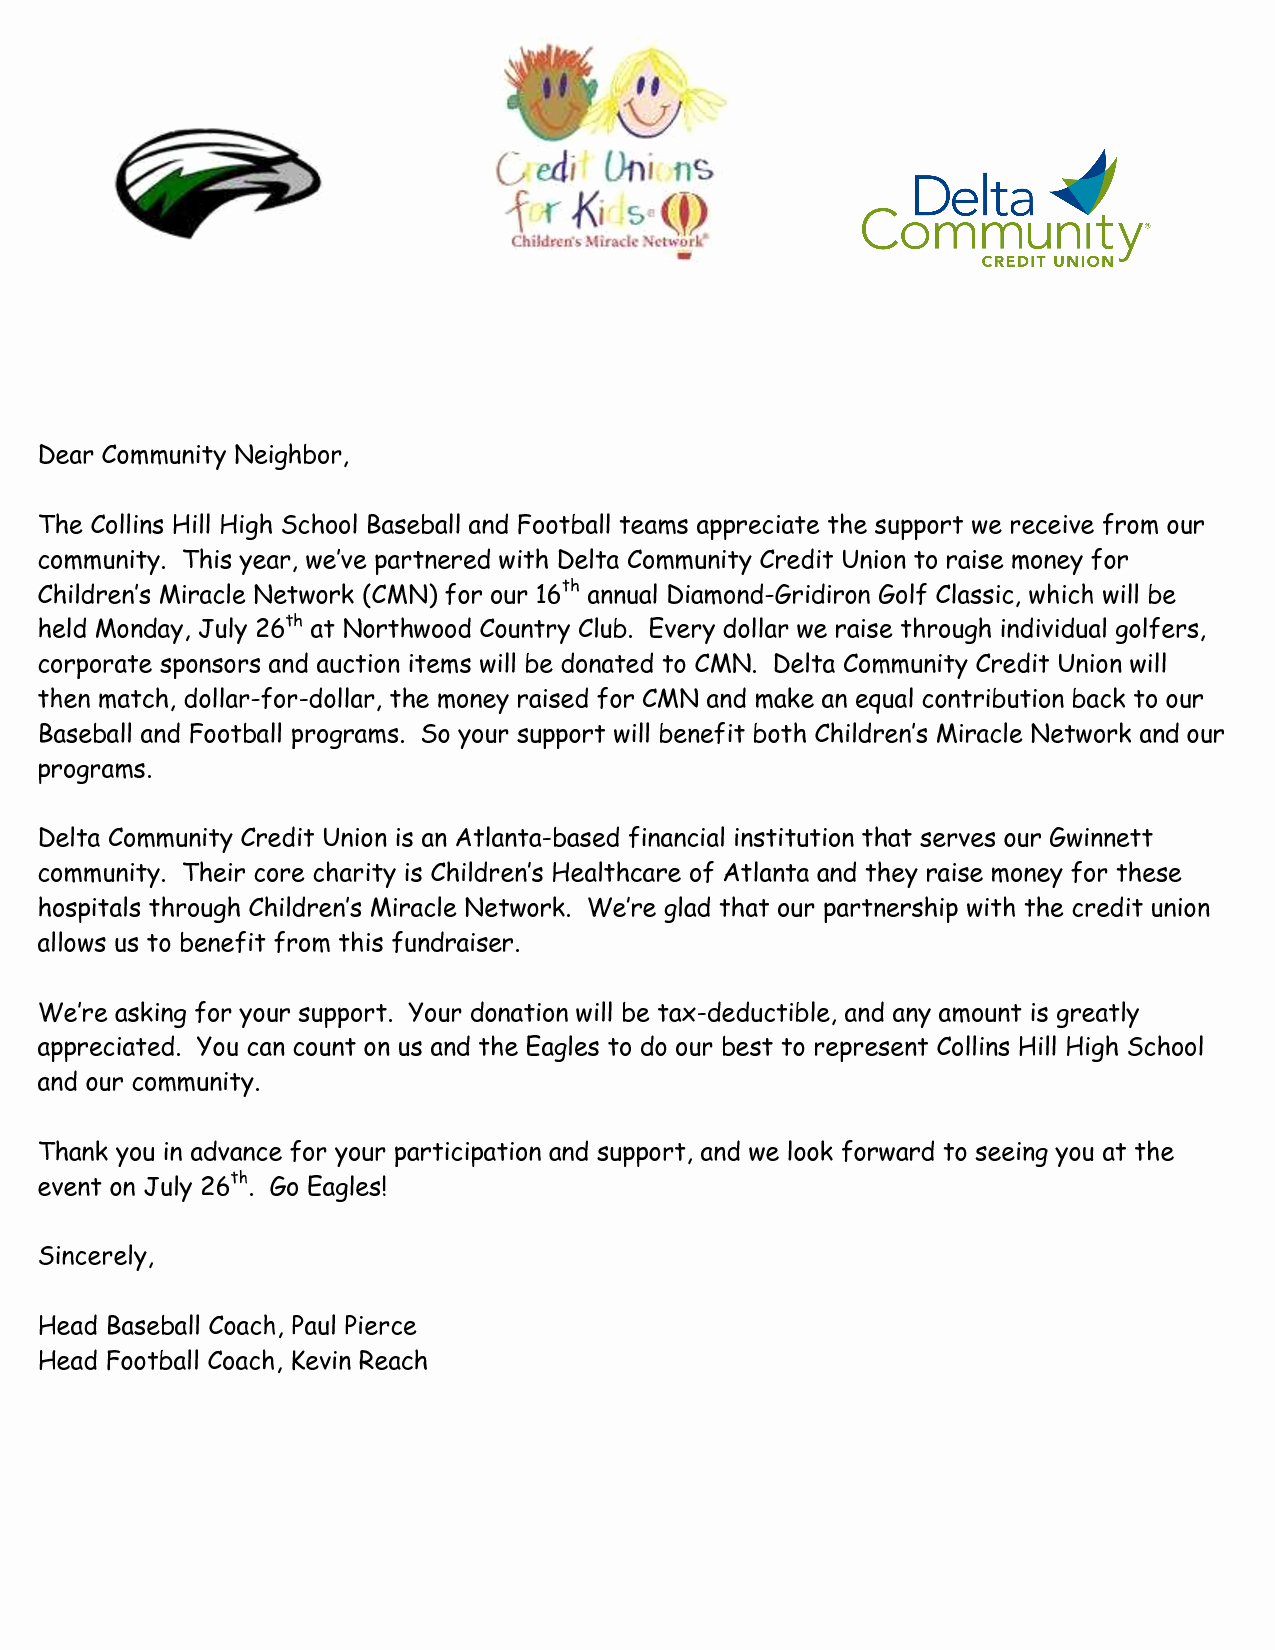 Golf tournament Donation Letter Template - Fundraising Sponsorship form Template Awesome Best S Sponsorship